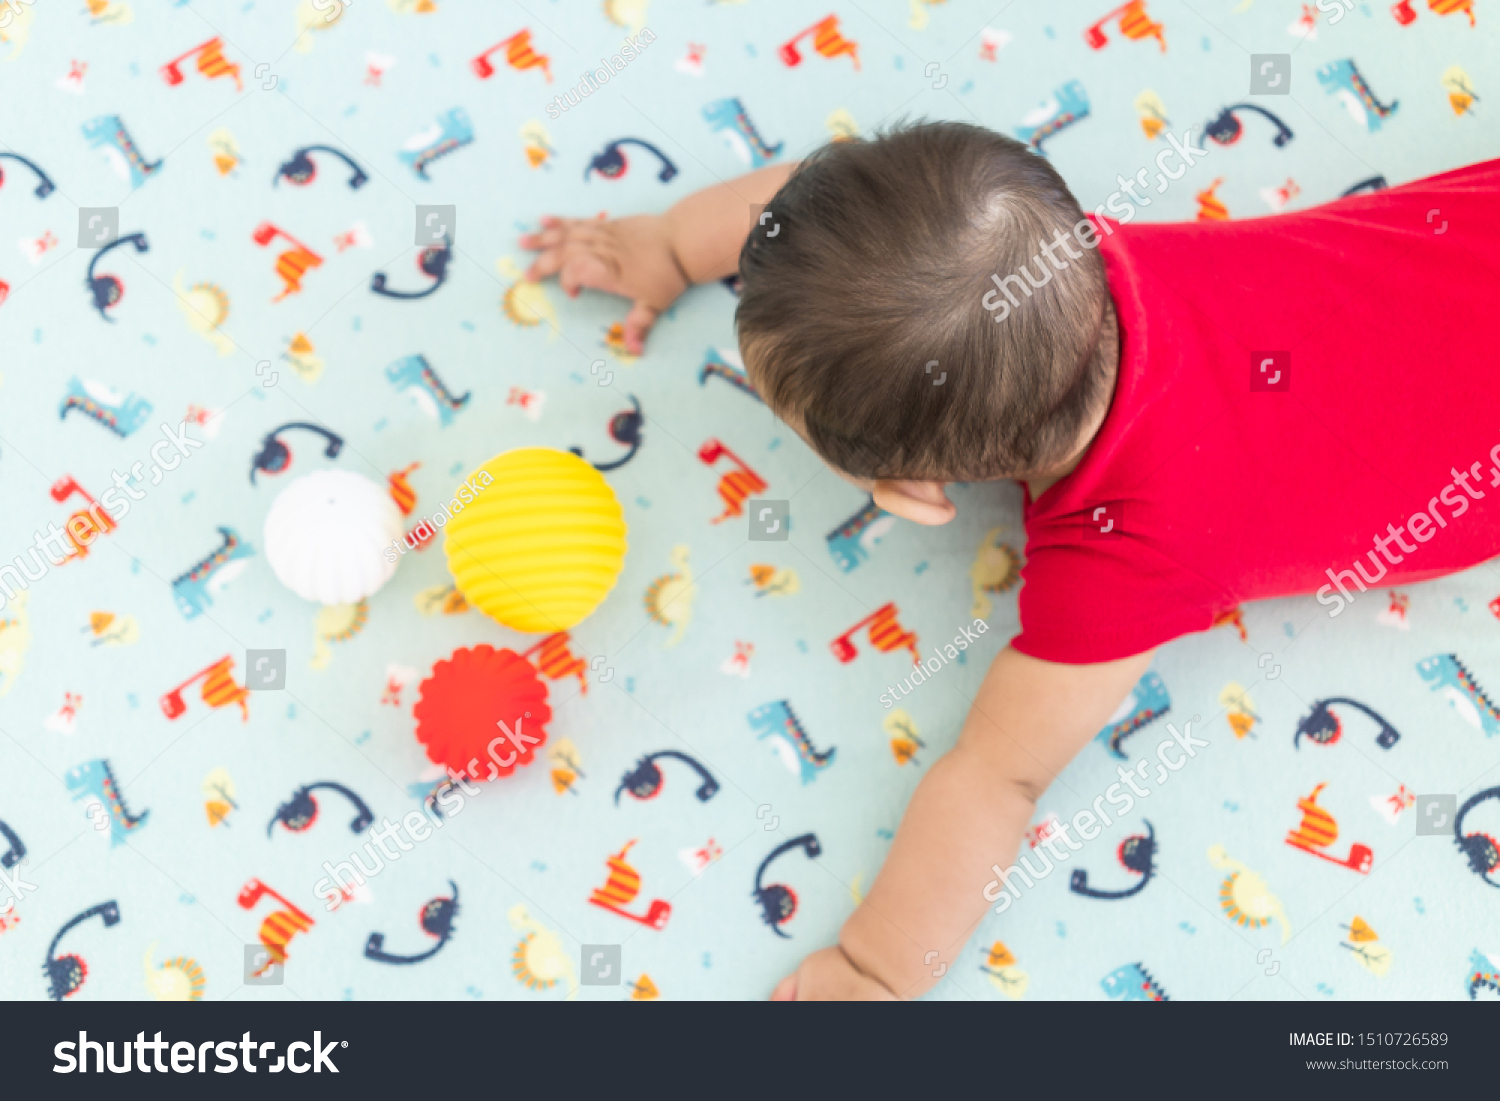 Baby playing with colorful toy rubber balls in the crib in a bright room. Child wearing a red bodysuit, laying on playful dinosaur crib sheet. #1510726589